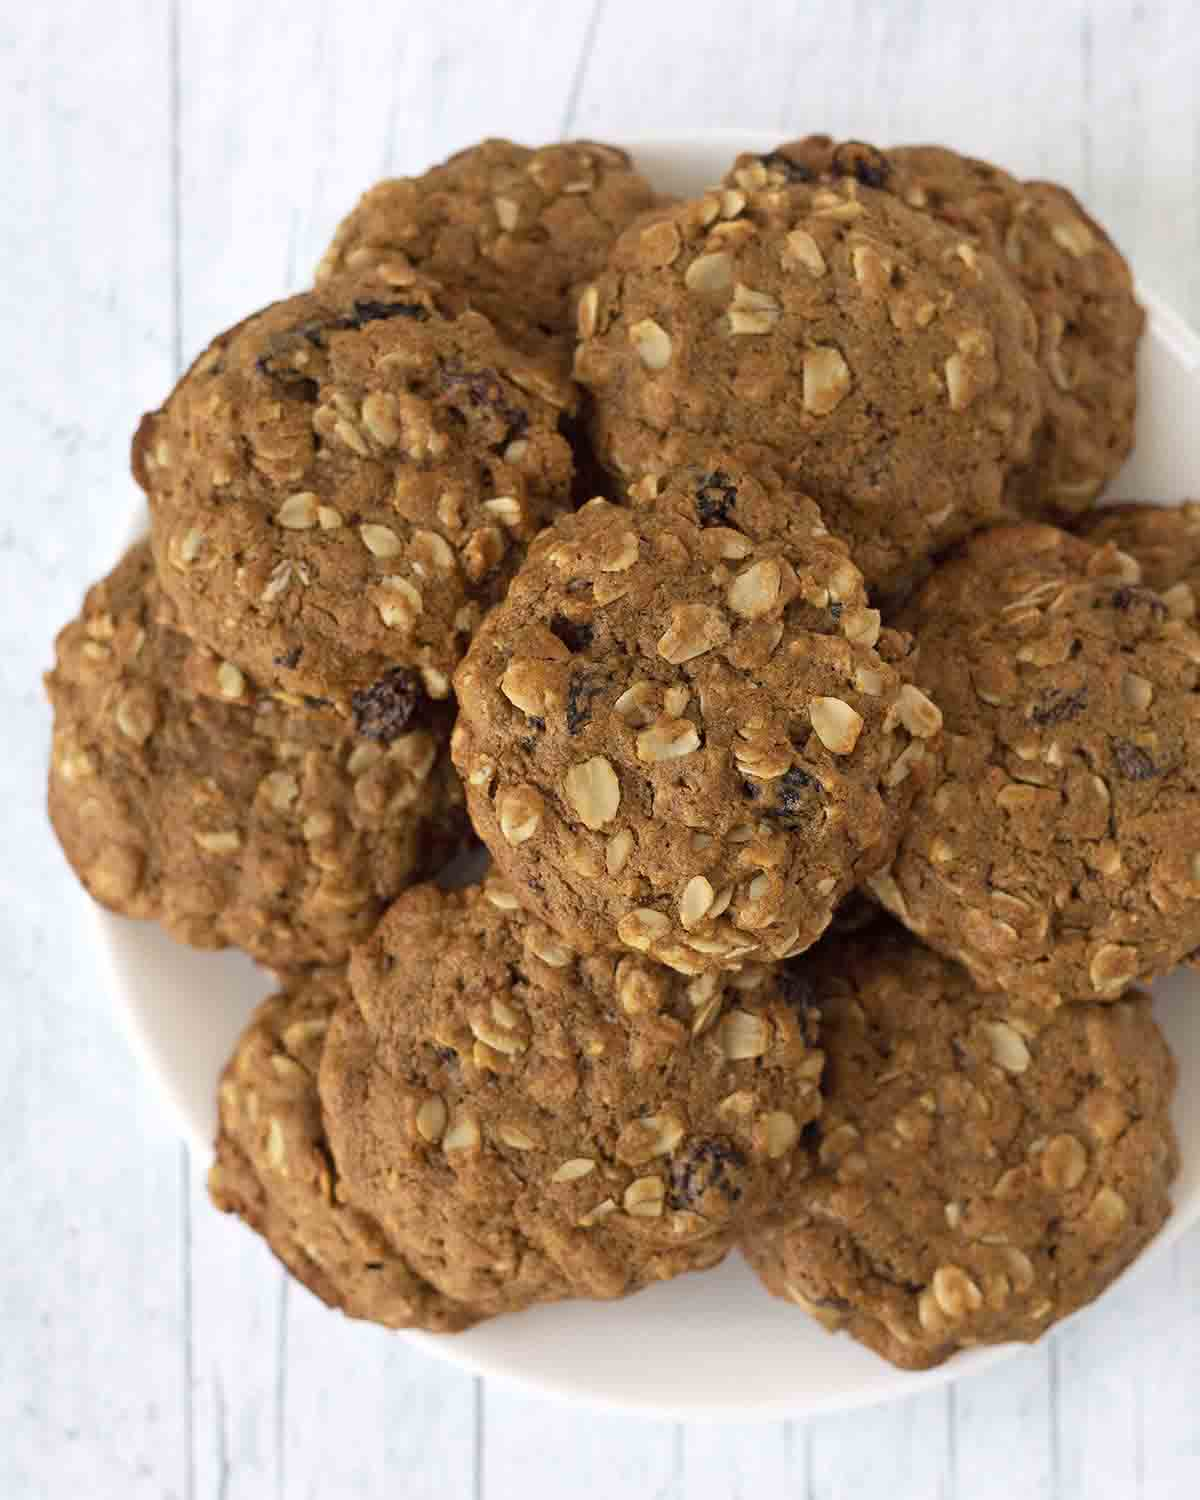 An overhead image showing a plate full of soft-baked vegan oatmeal raisin cookies.